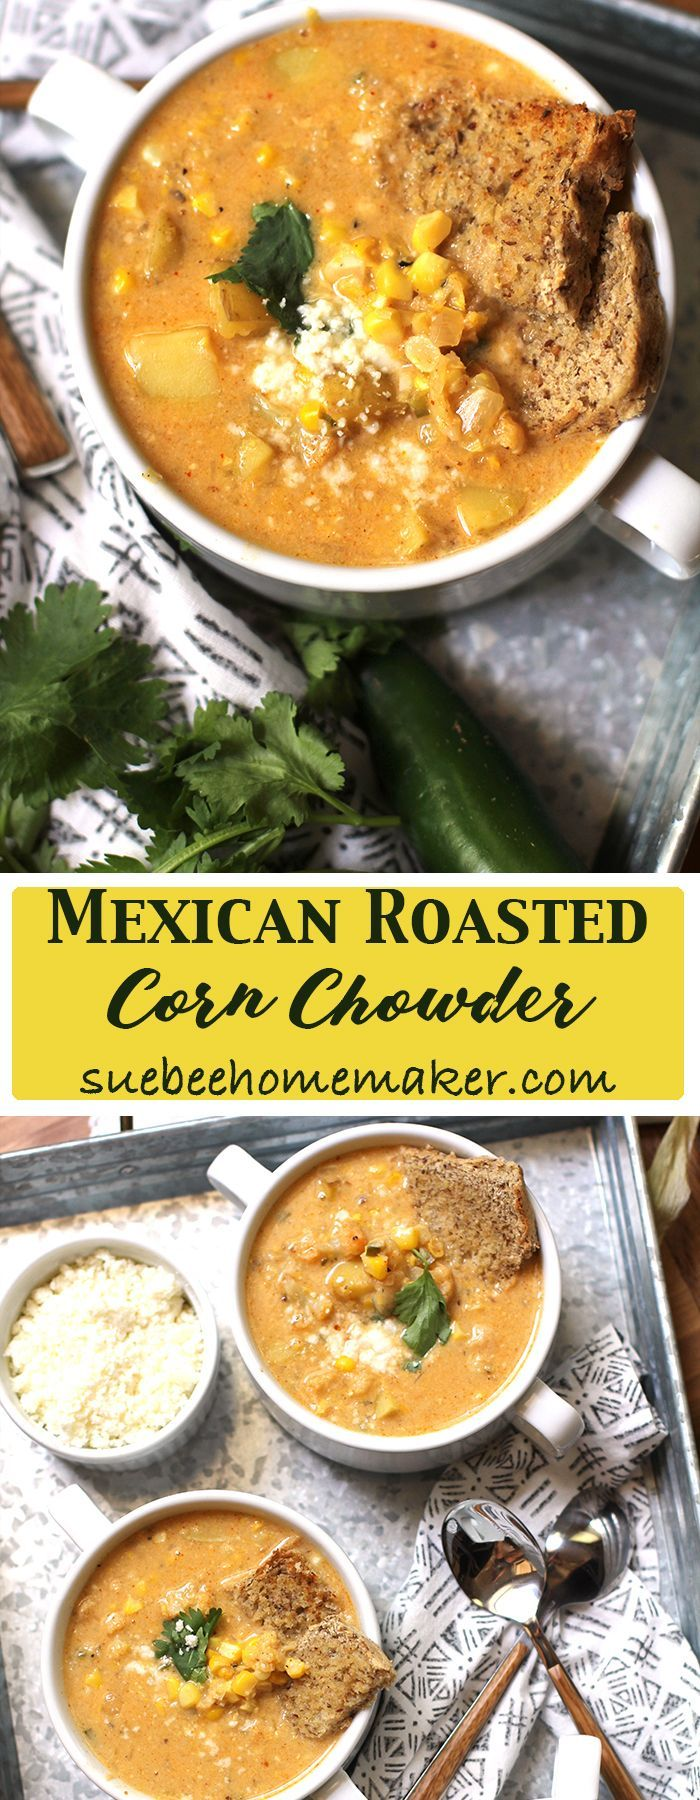 Mexican Roasted Corn Chowder combines roasted corn, potatoes, and cauliflower - and is flavored with spicy ingredients including jalapeños and spices. SO good!!